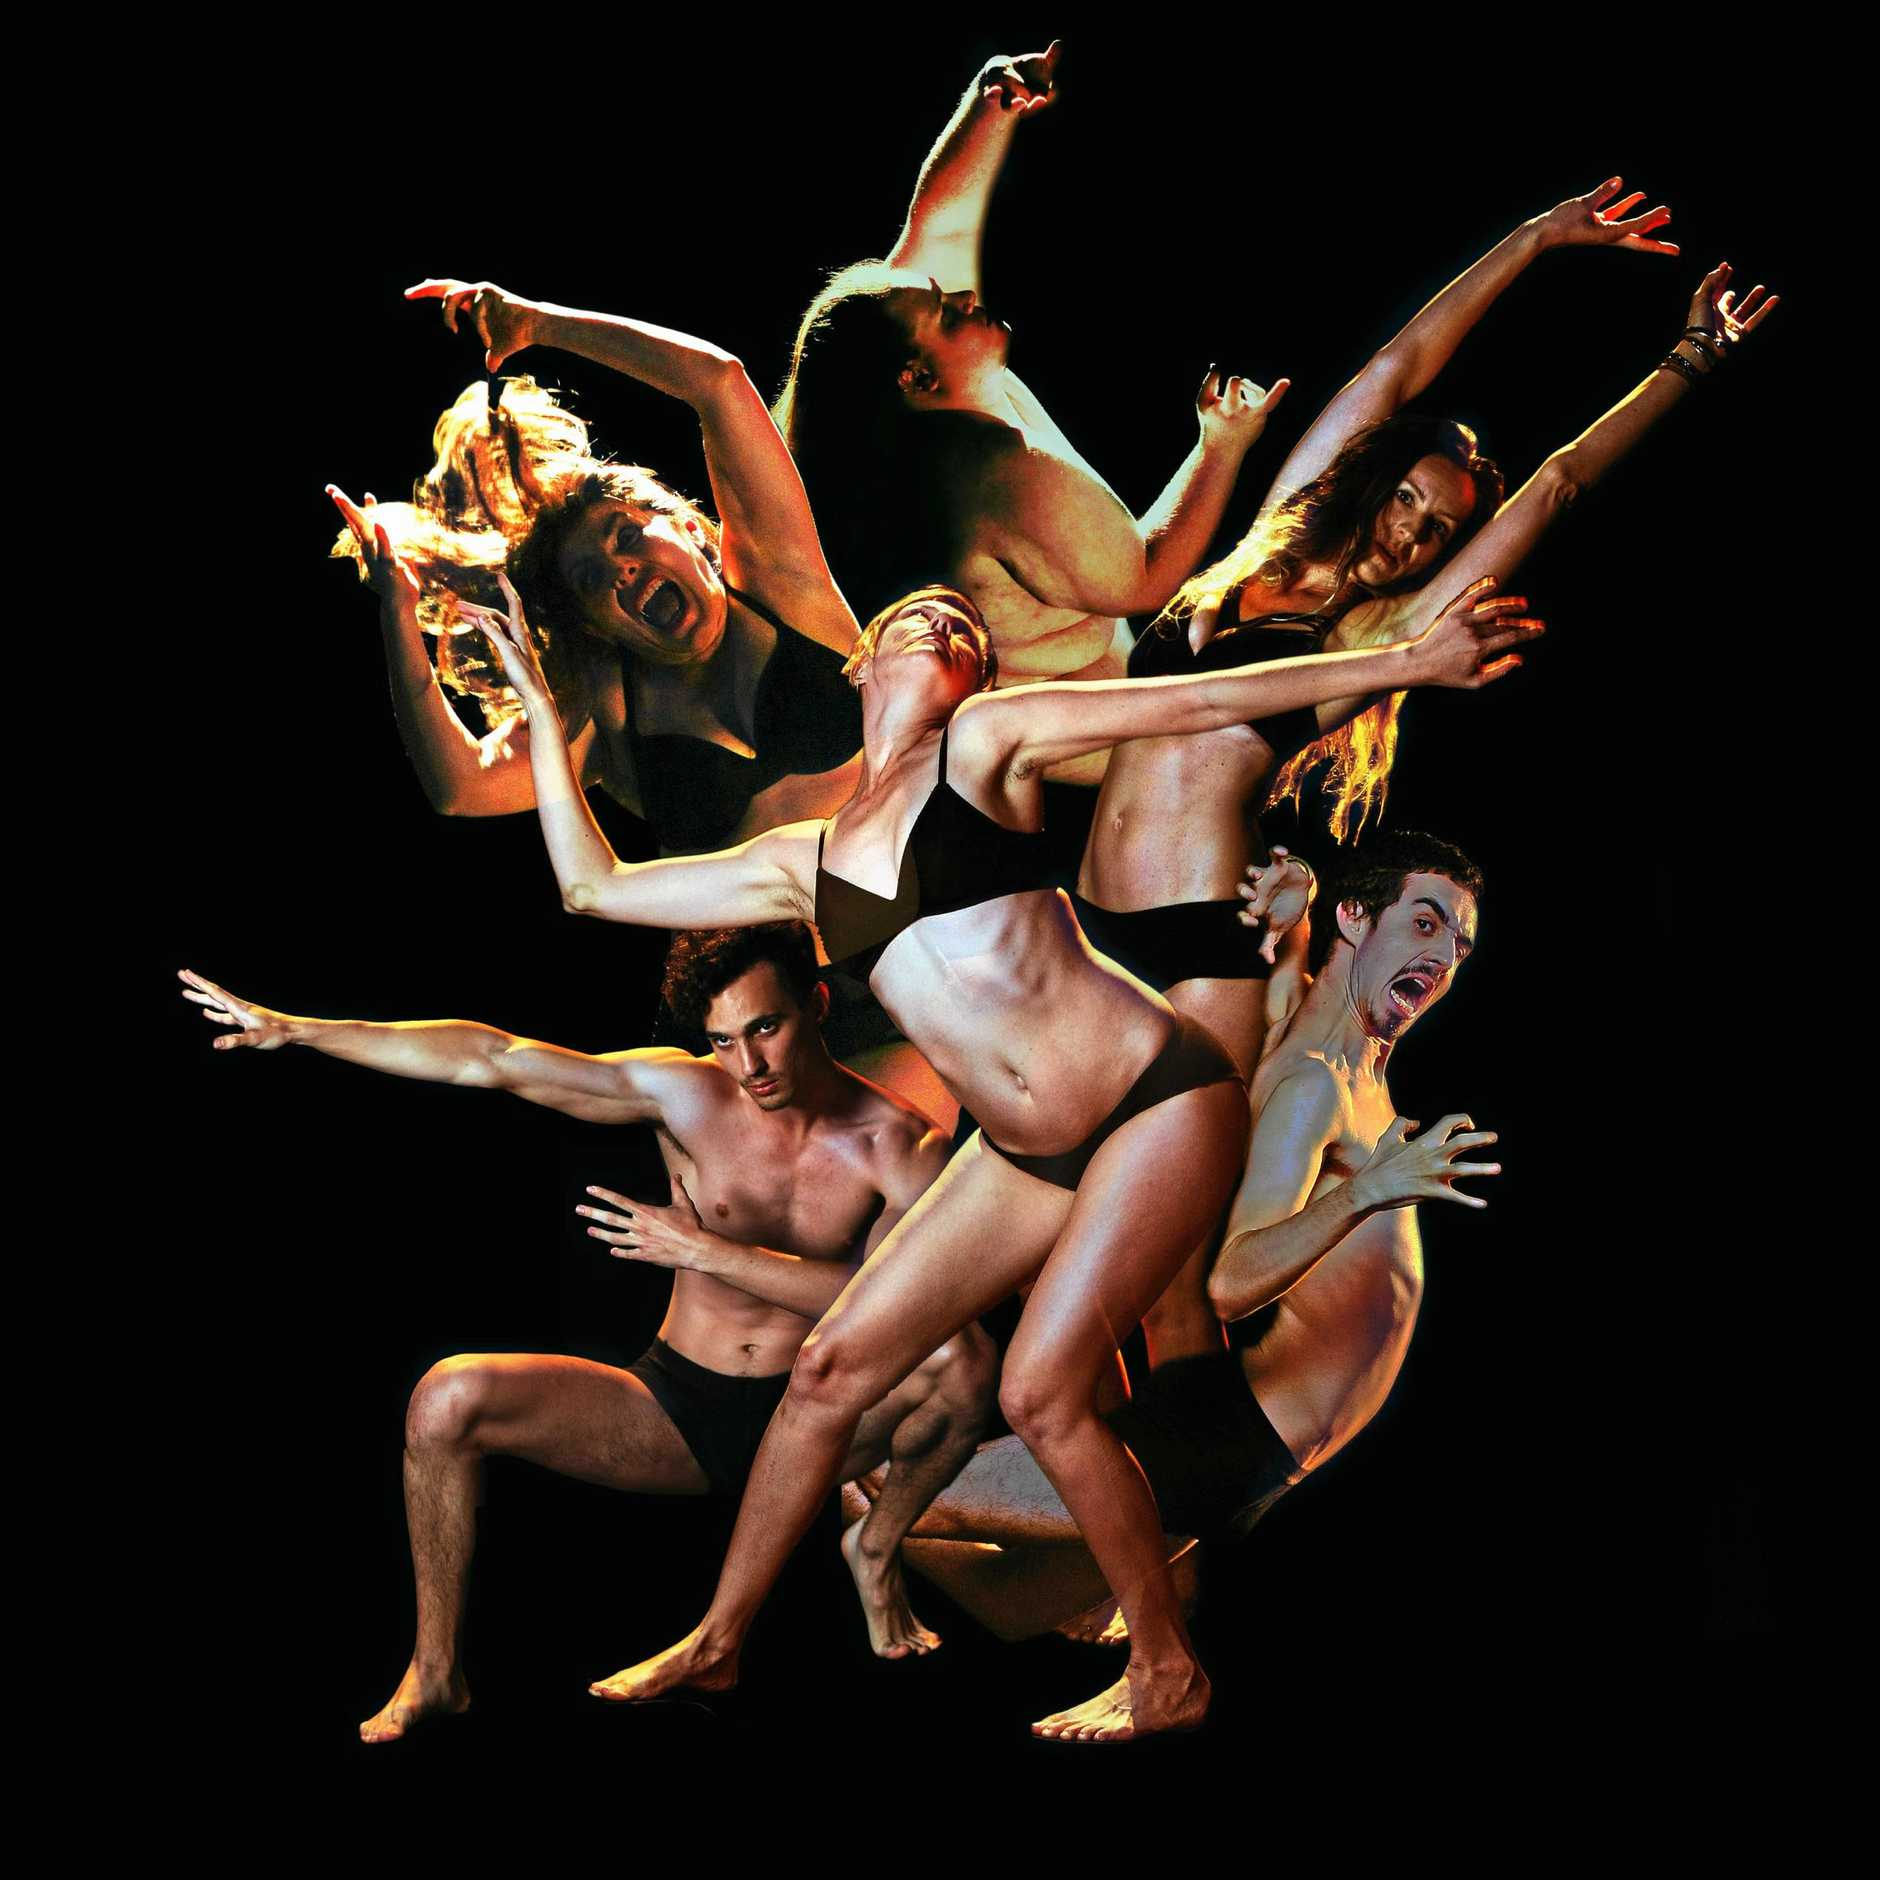 USC Performing Arts Masters' students will appear in a cutting edge contemporary performance Dusk 'til Dawn.